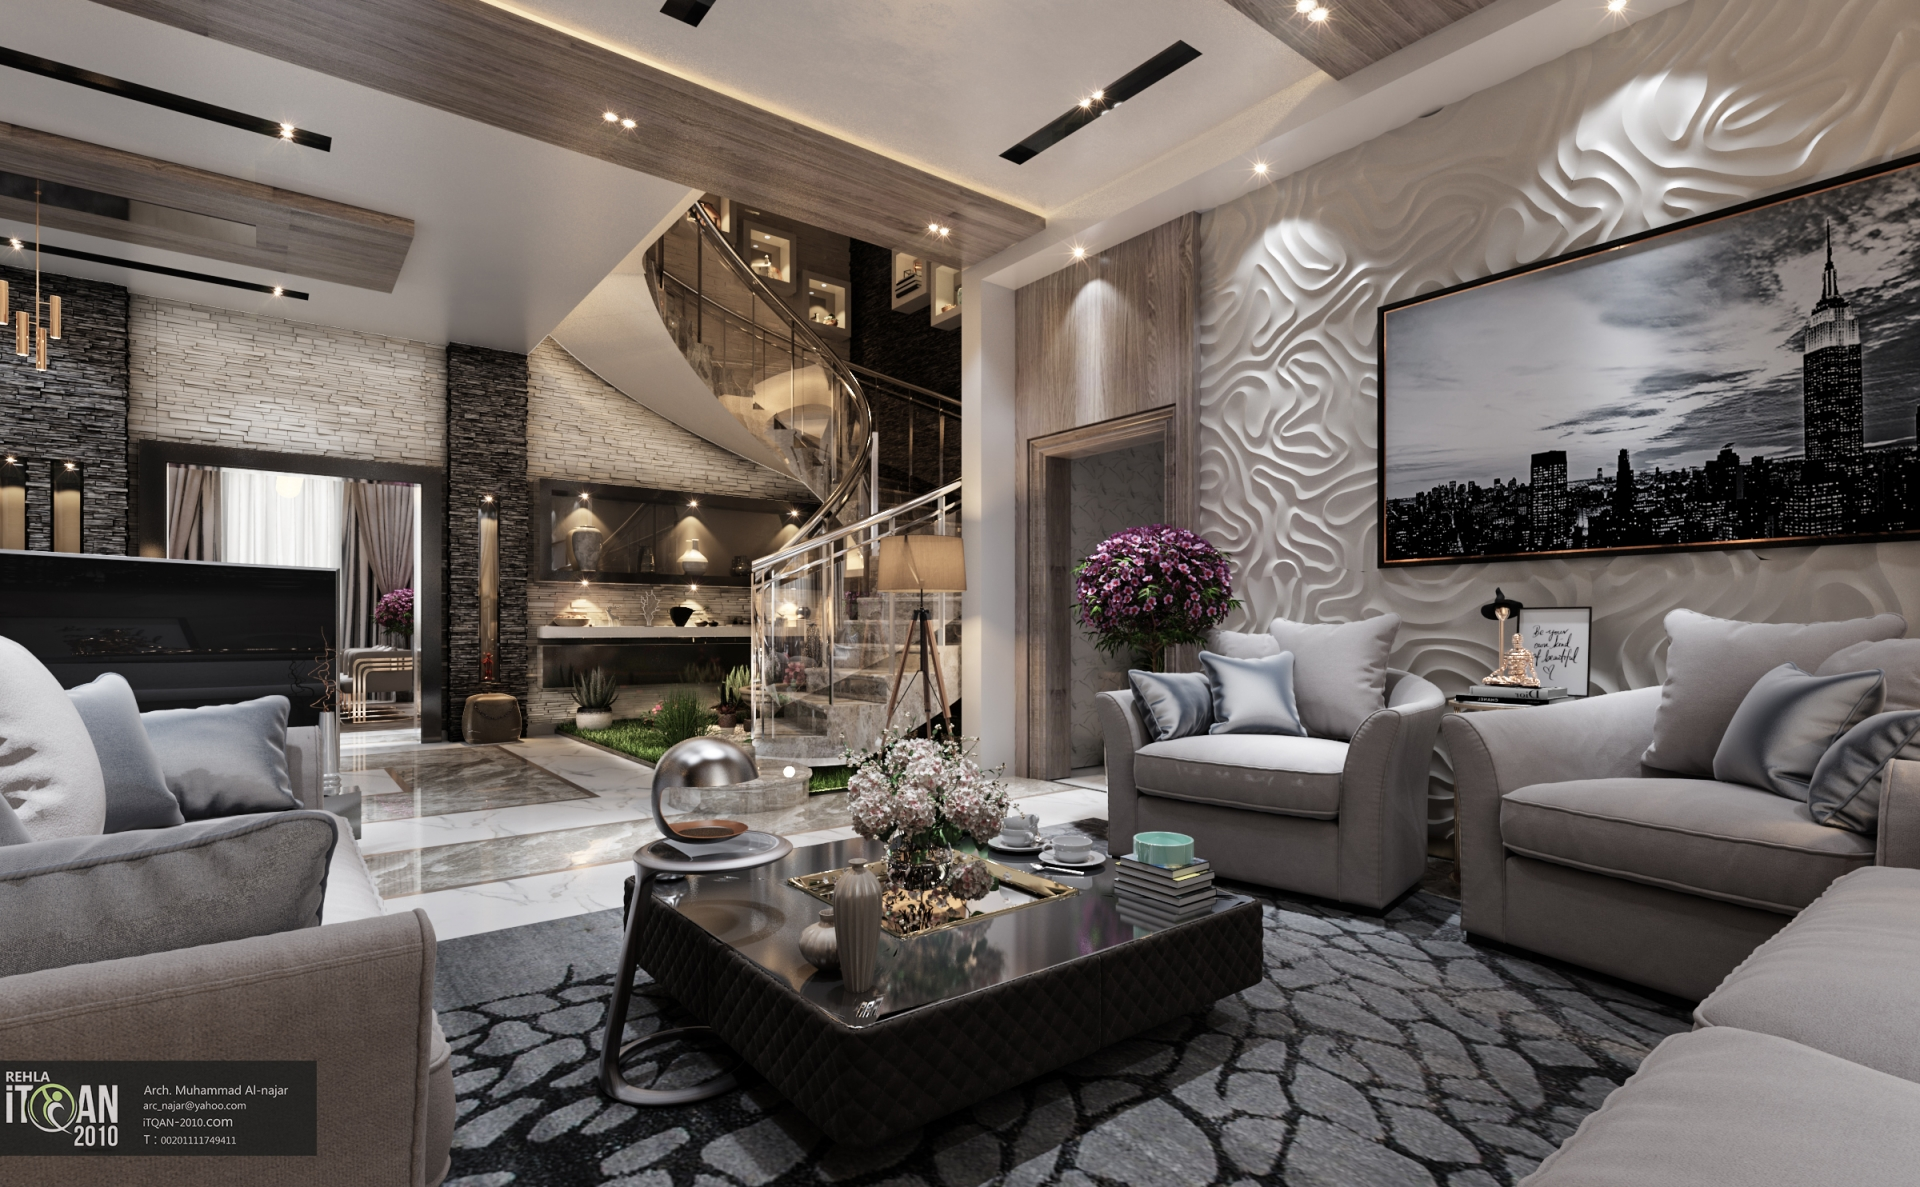 Luxury Living Room Design Ideas With Enticing Decor Inside: Luxury Living Room + Main Hall